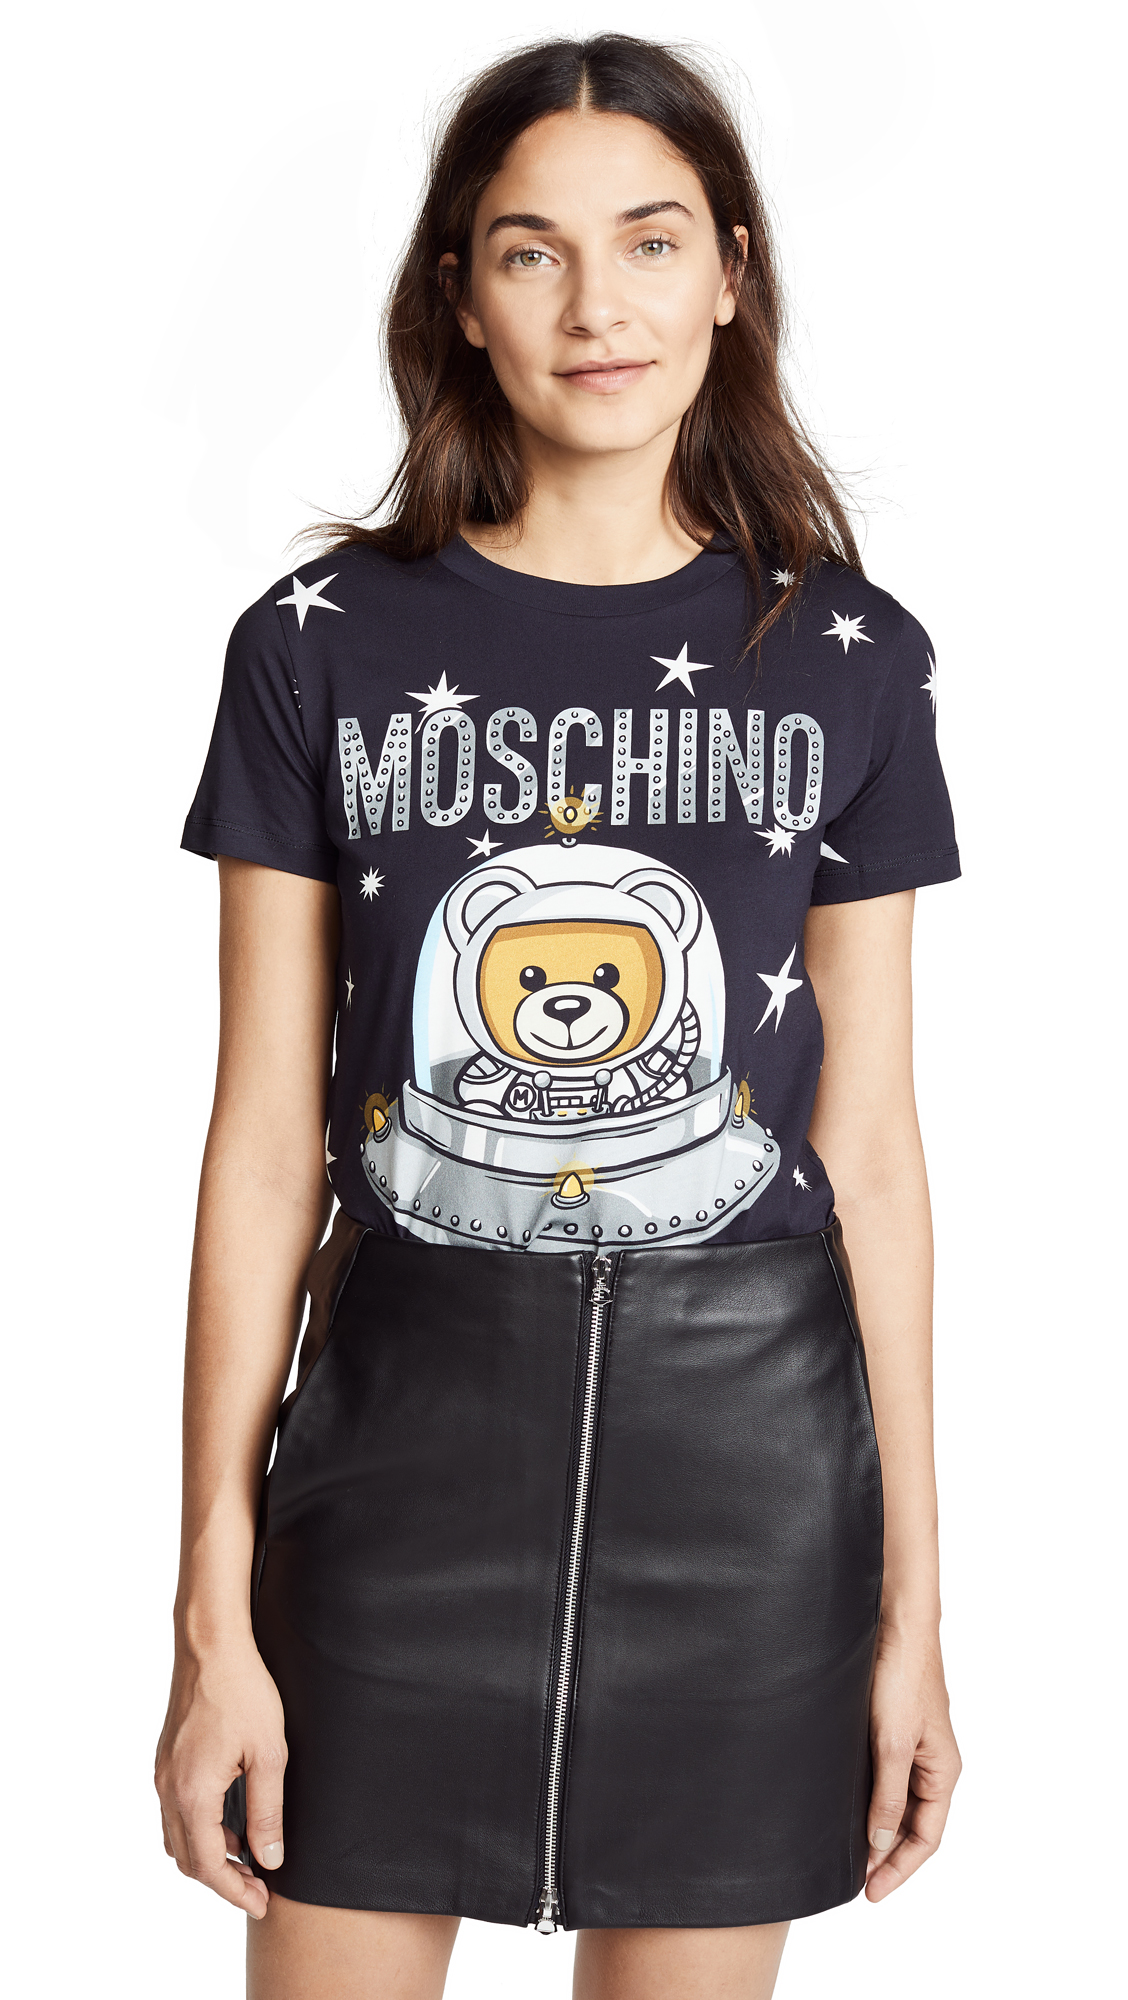 SPACESHIP BEAR TEE